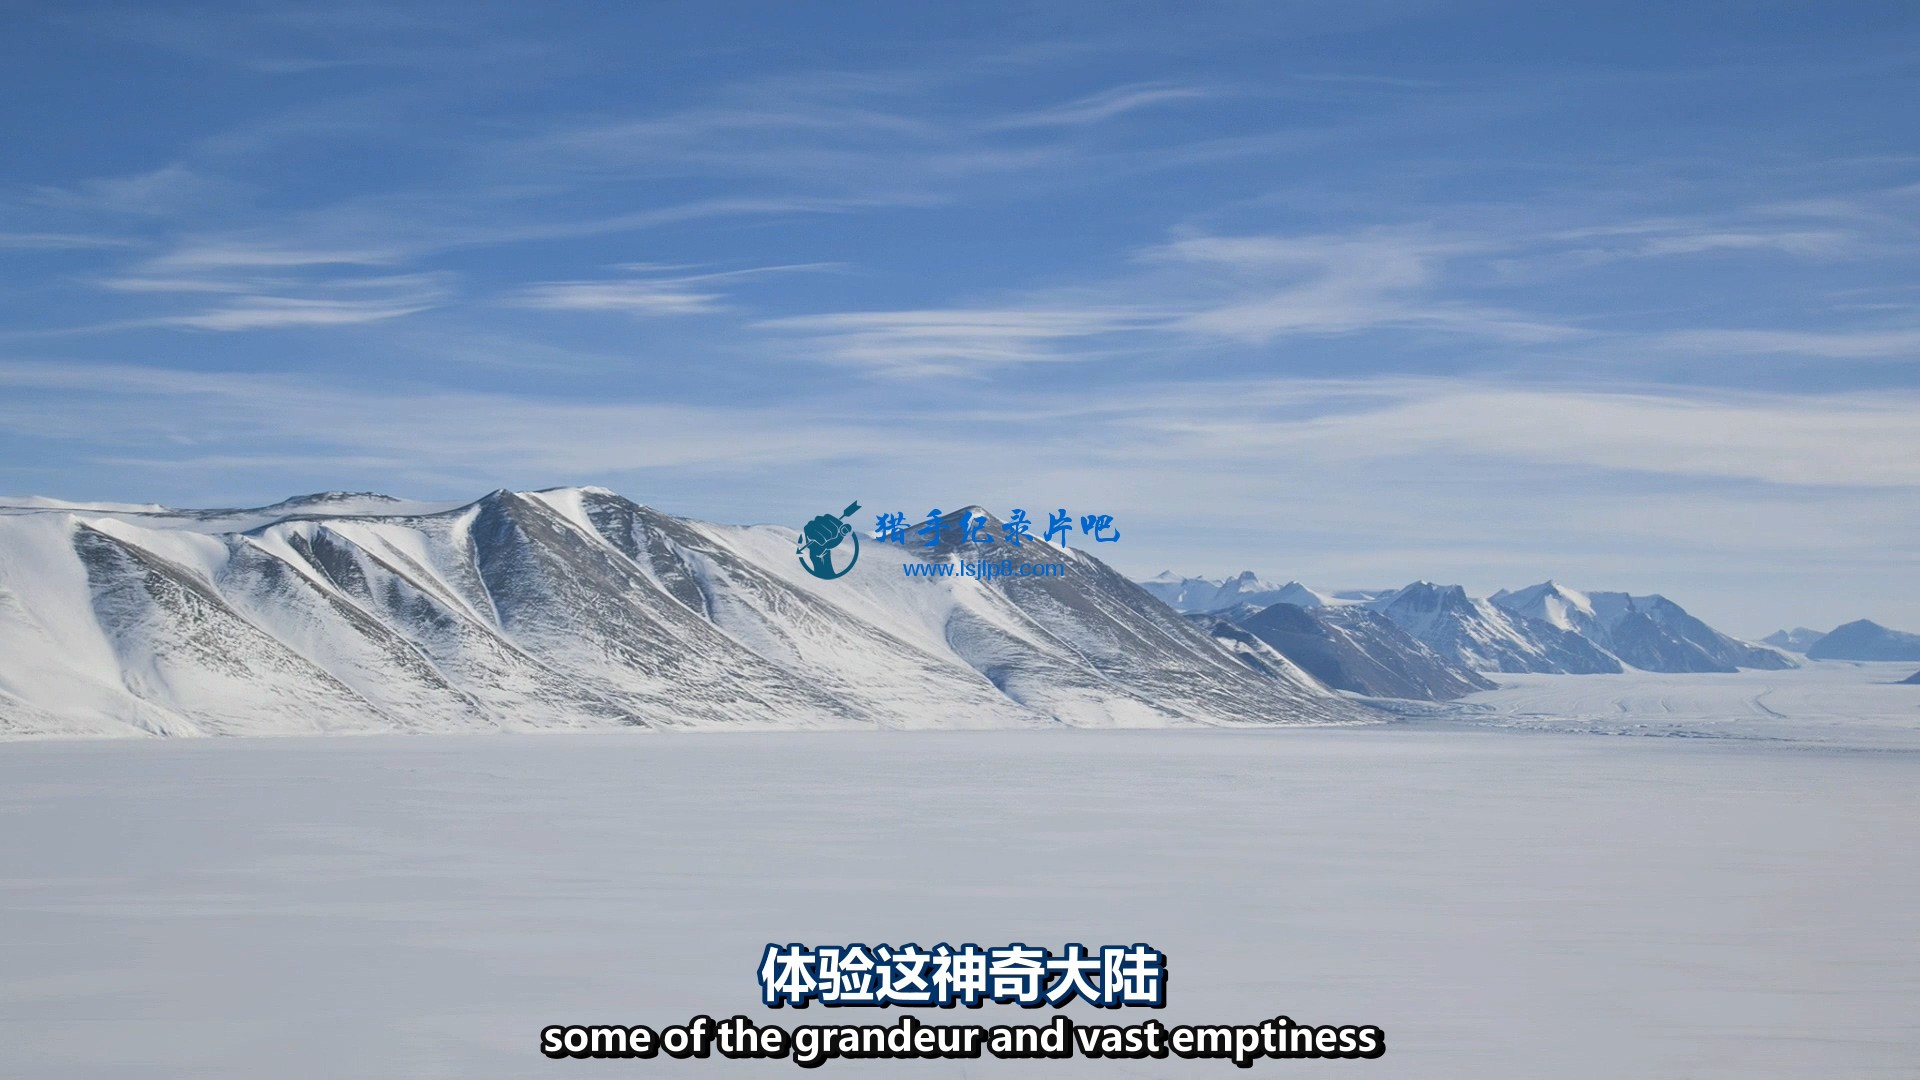 Antarctica.A.Year.on.Ice.2013.1080p.BluRay.x264.DTS-WiKi.mkv_20200320_104729.927.jpg